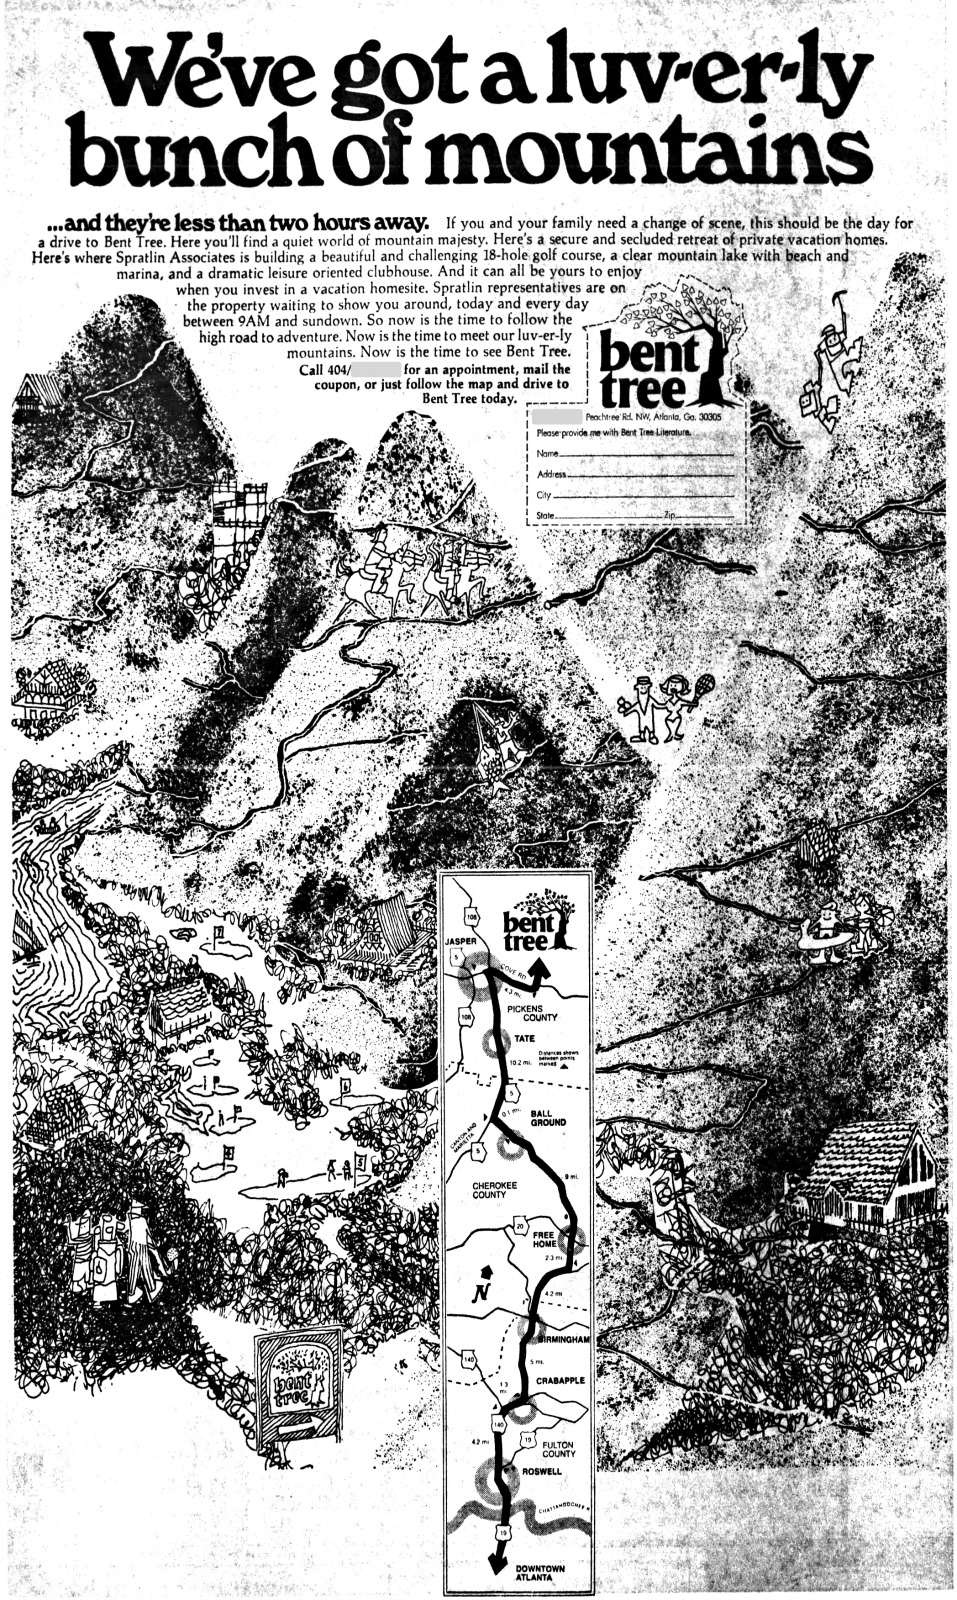 Bent Tree advertisement from November 1970